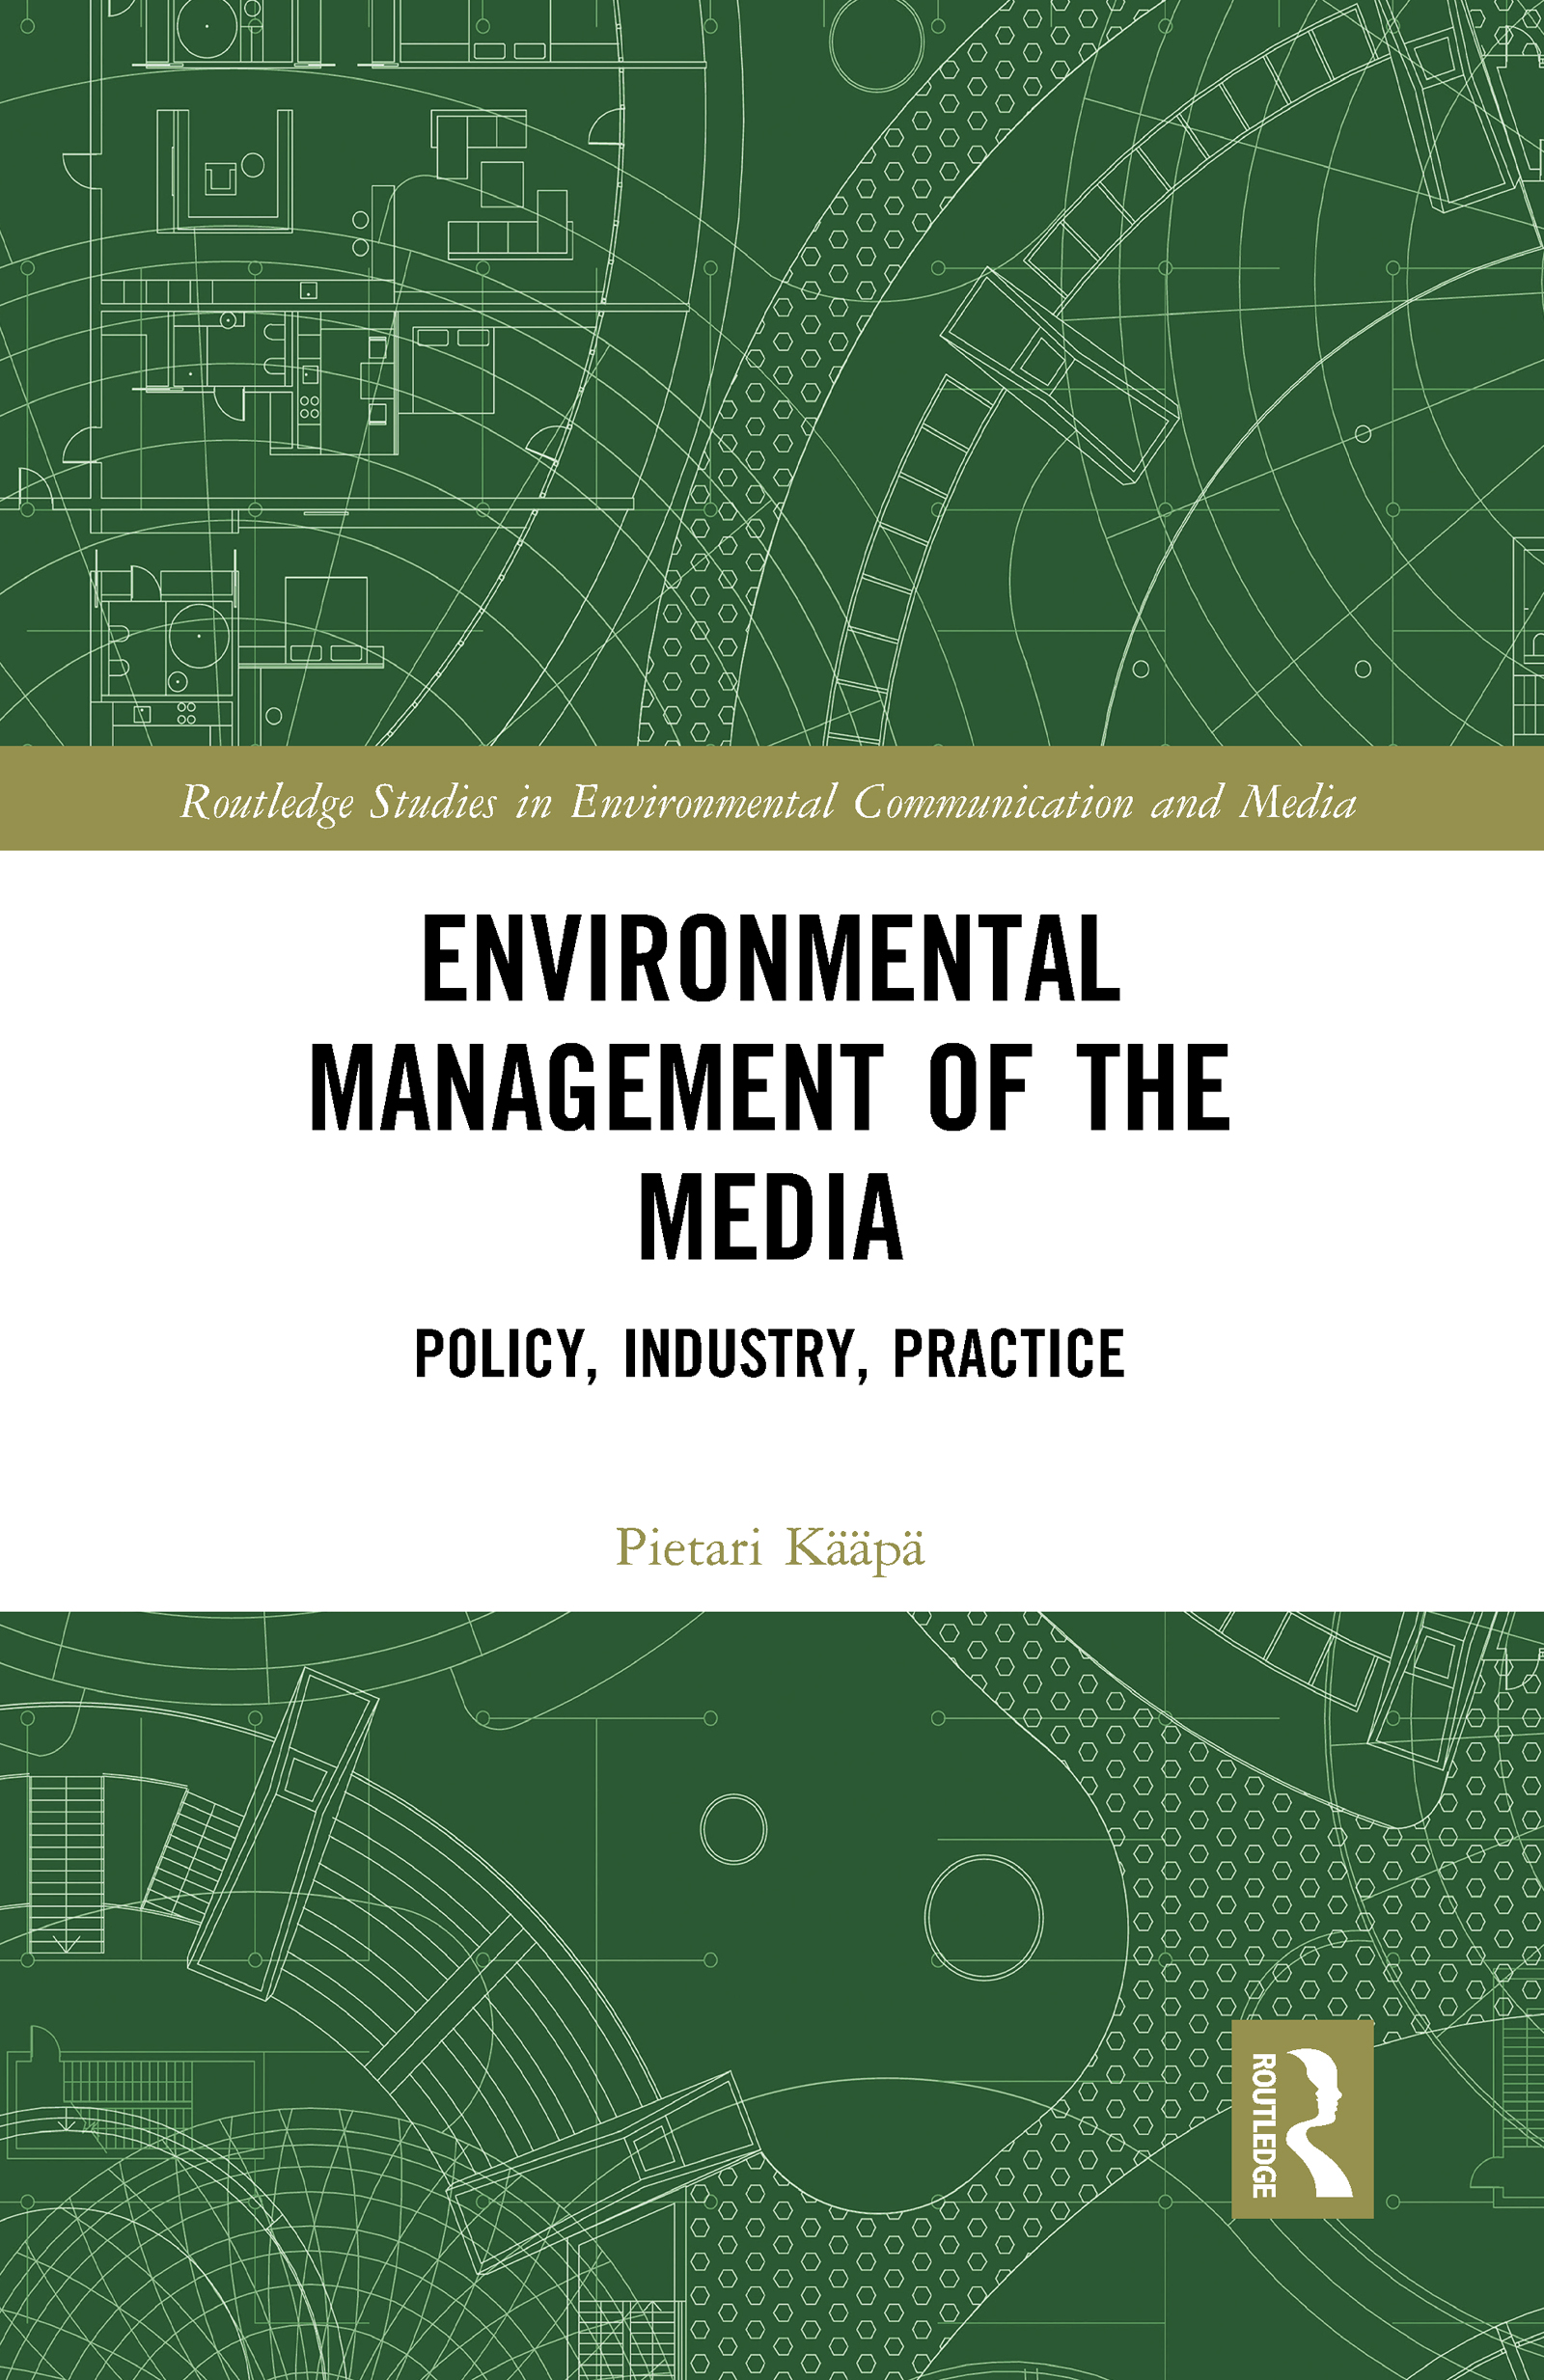 Environmental Management of the Media